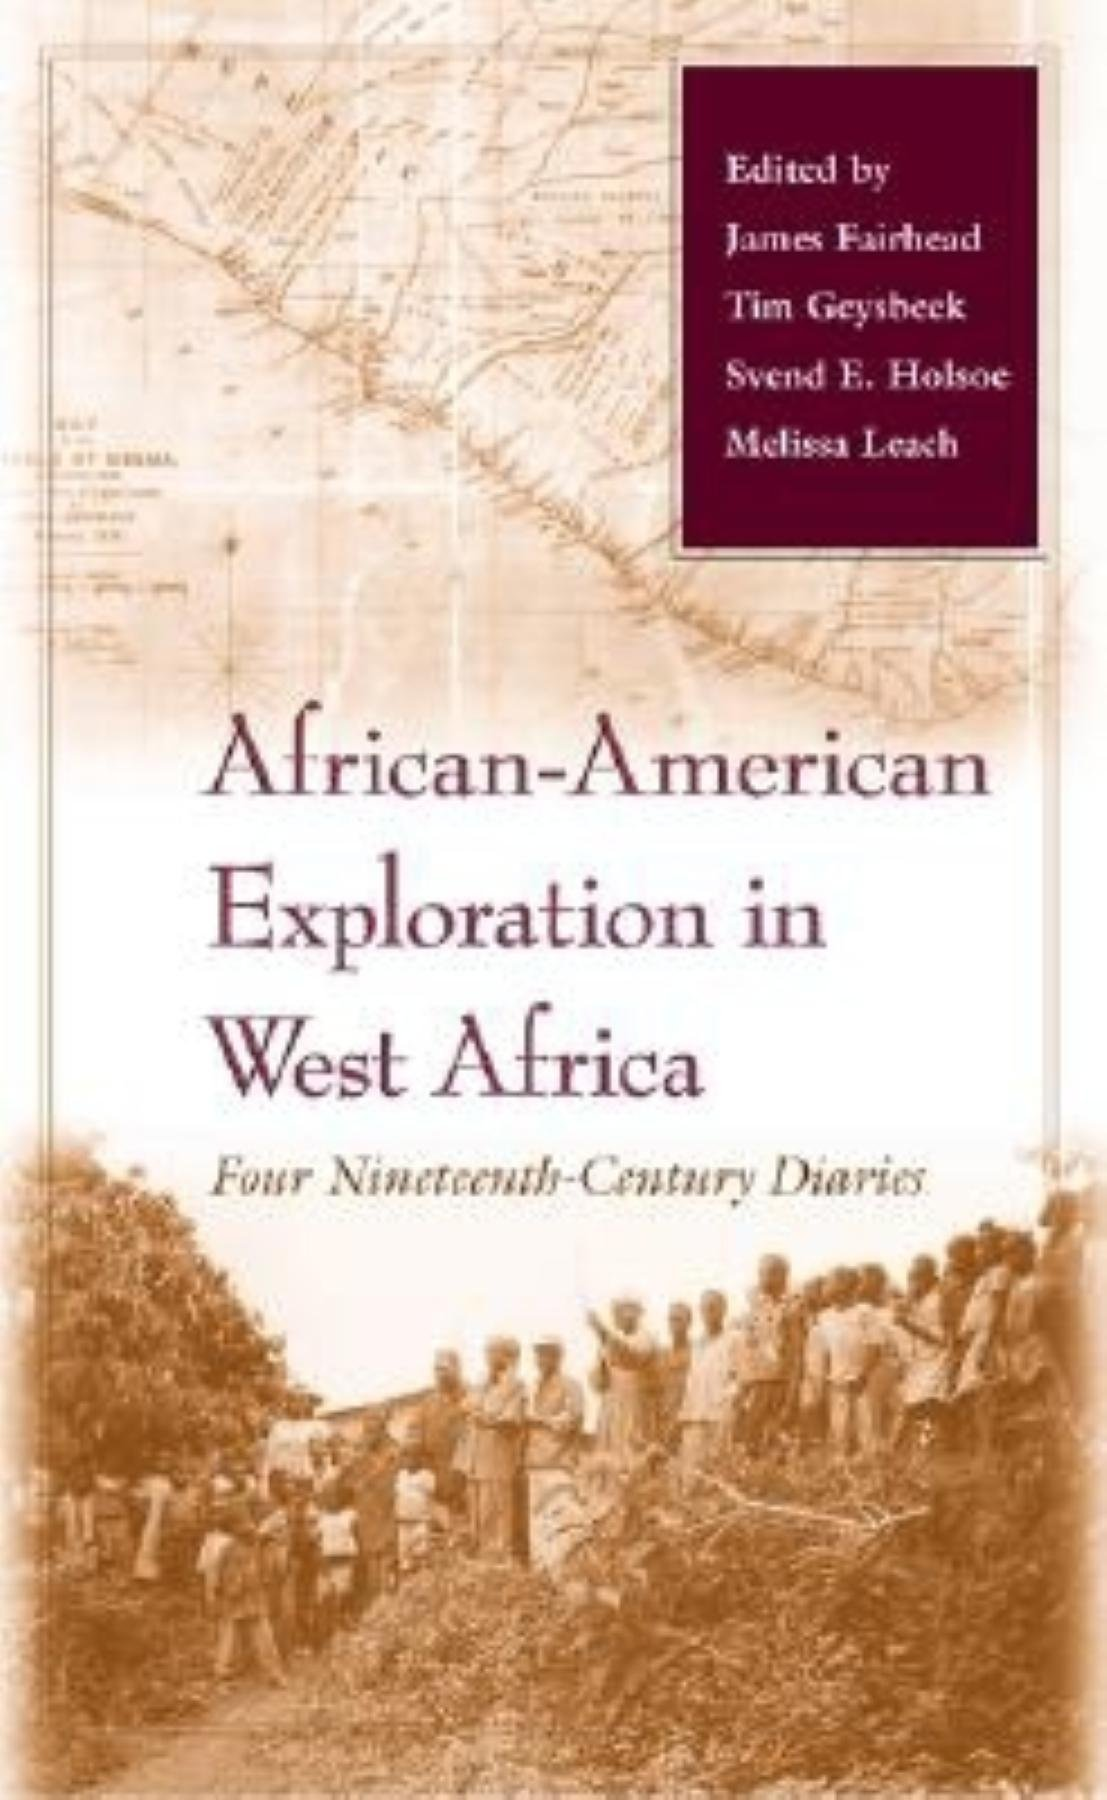 African-American Exploration in West Africa: Four Nineteenth-Century Diaries PDF